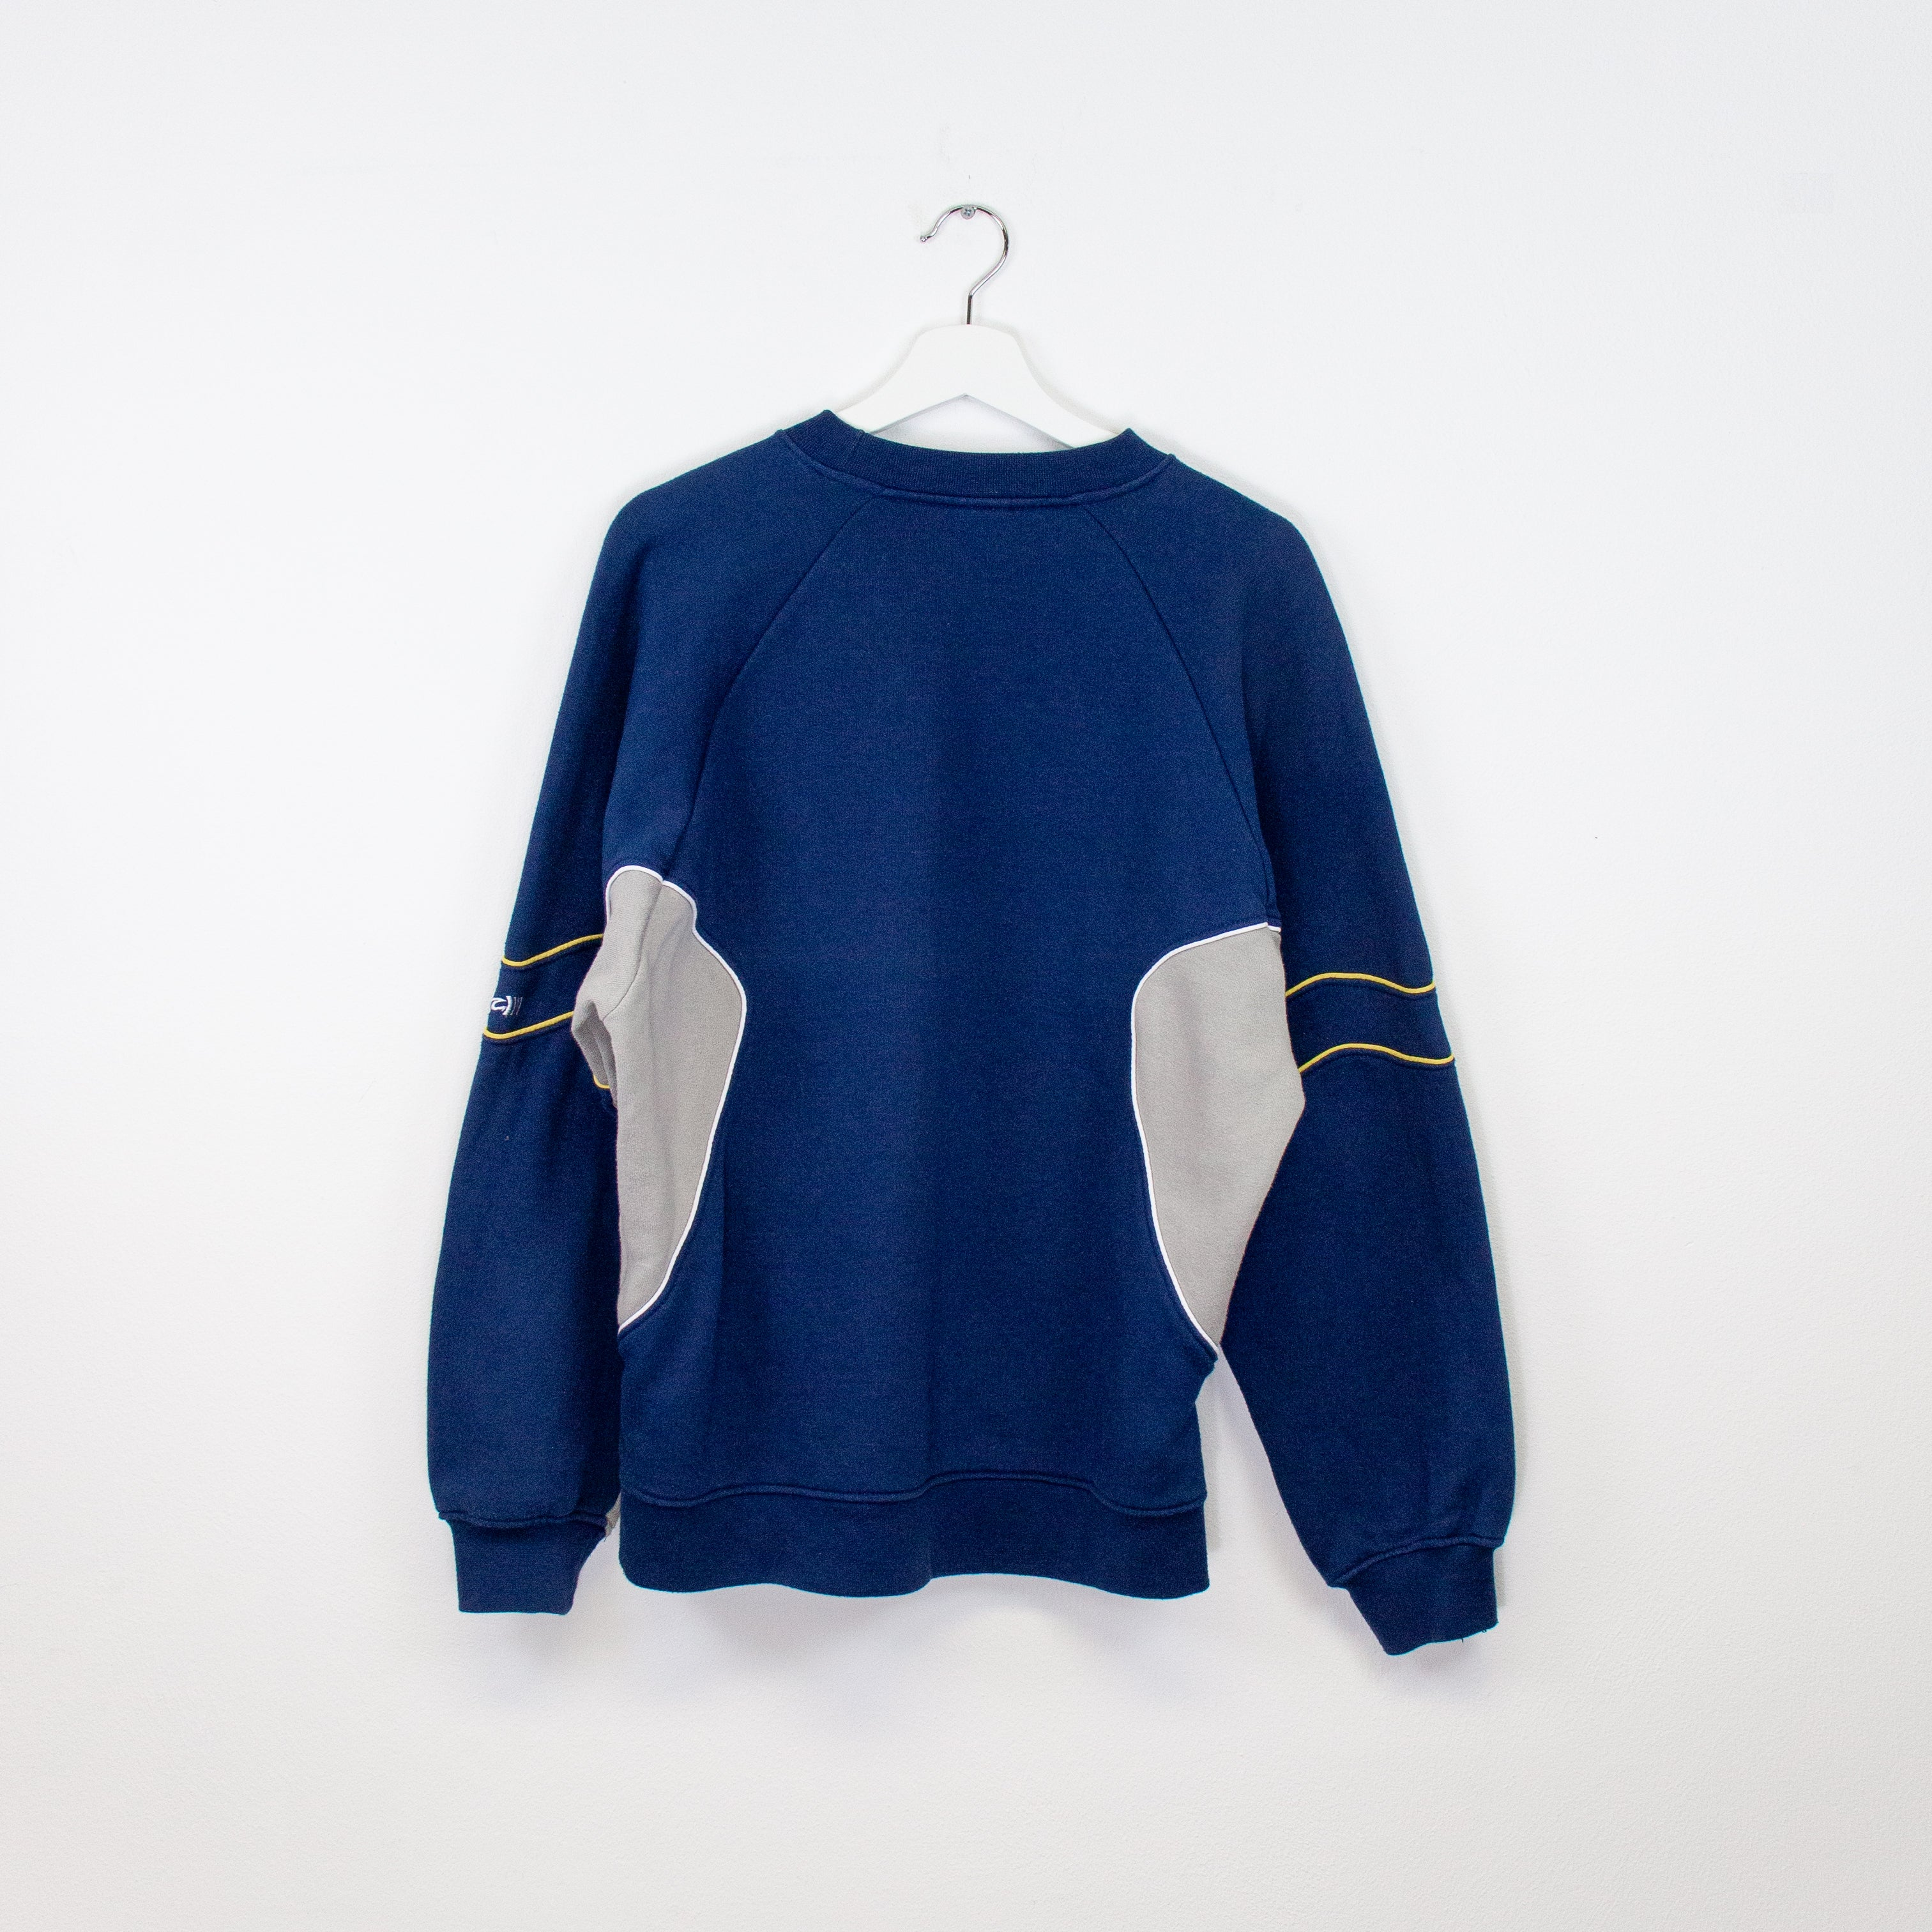 Rip Curl Sweatshirt - Small